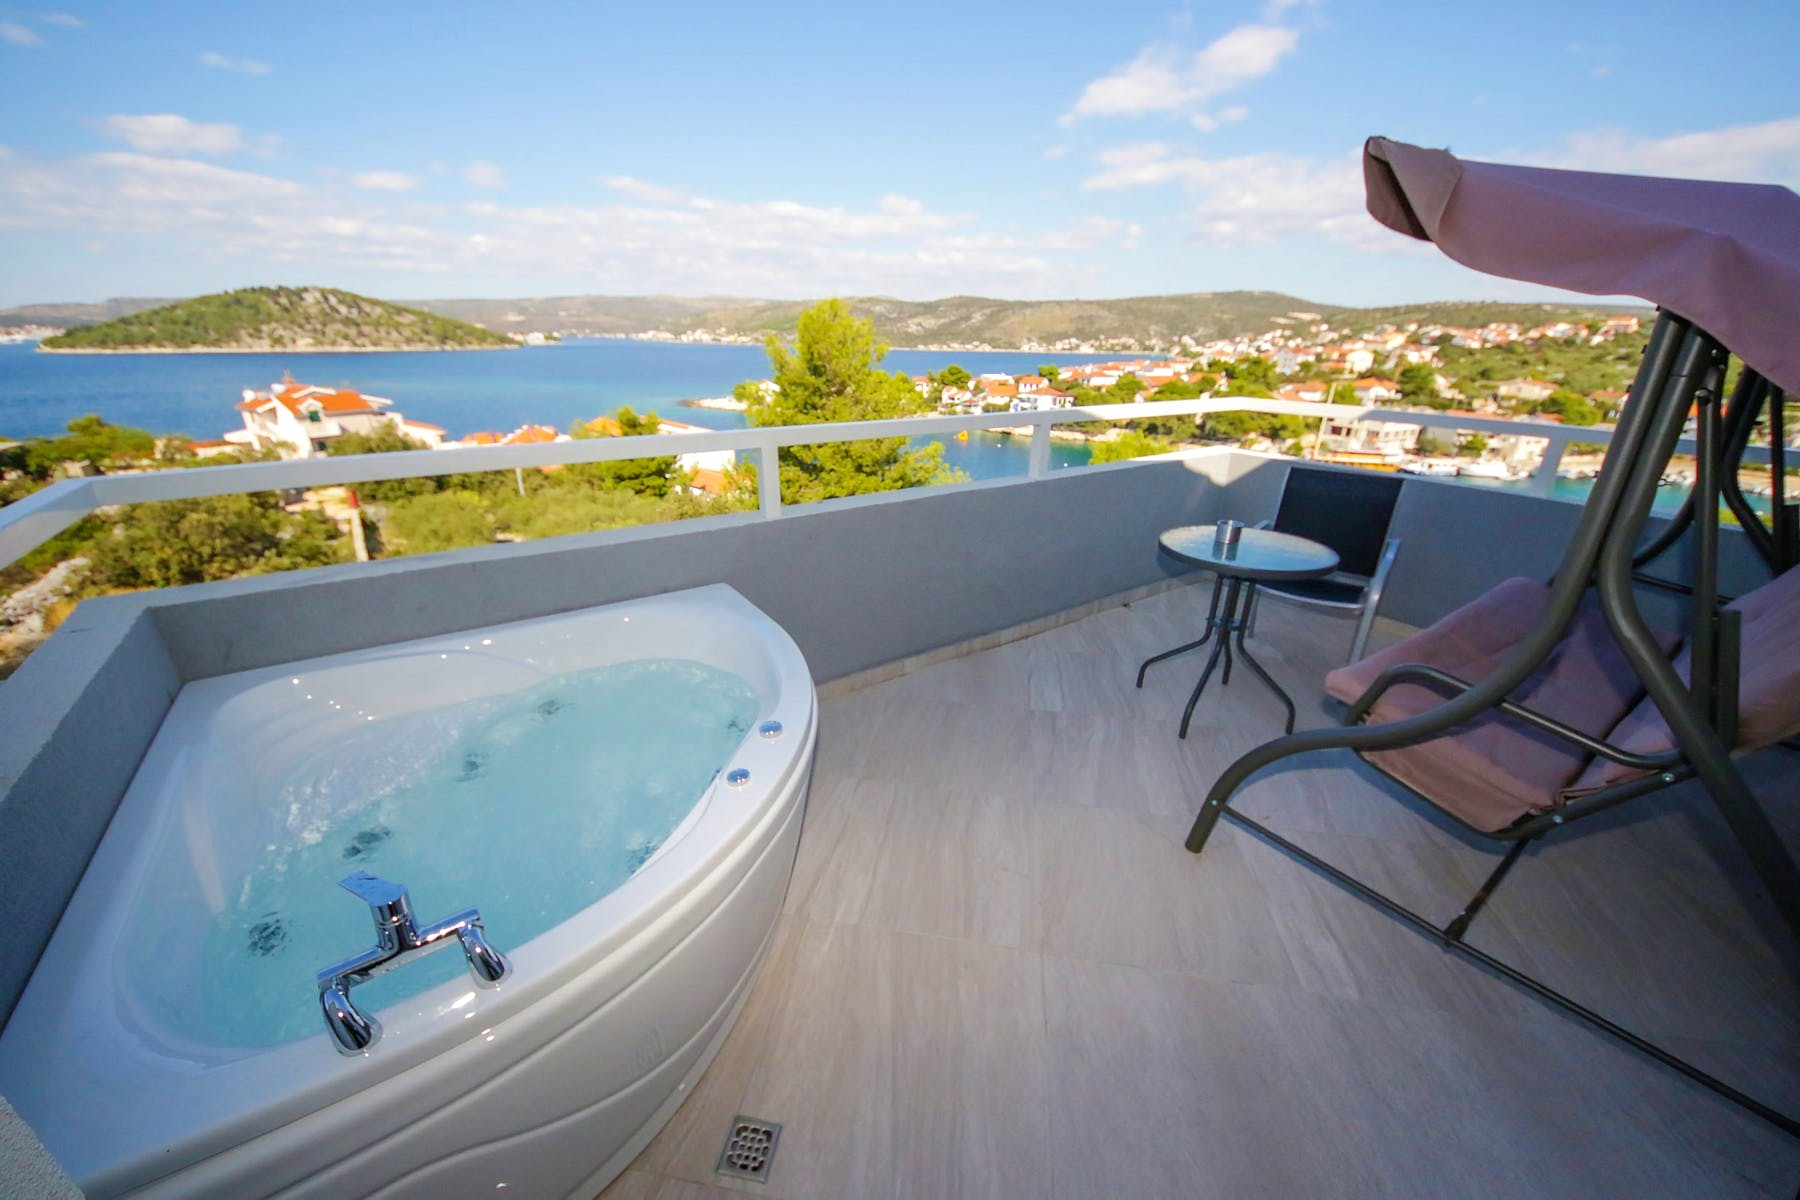 Balcony with Jacuzzi and seaview